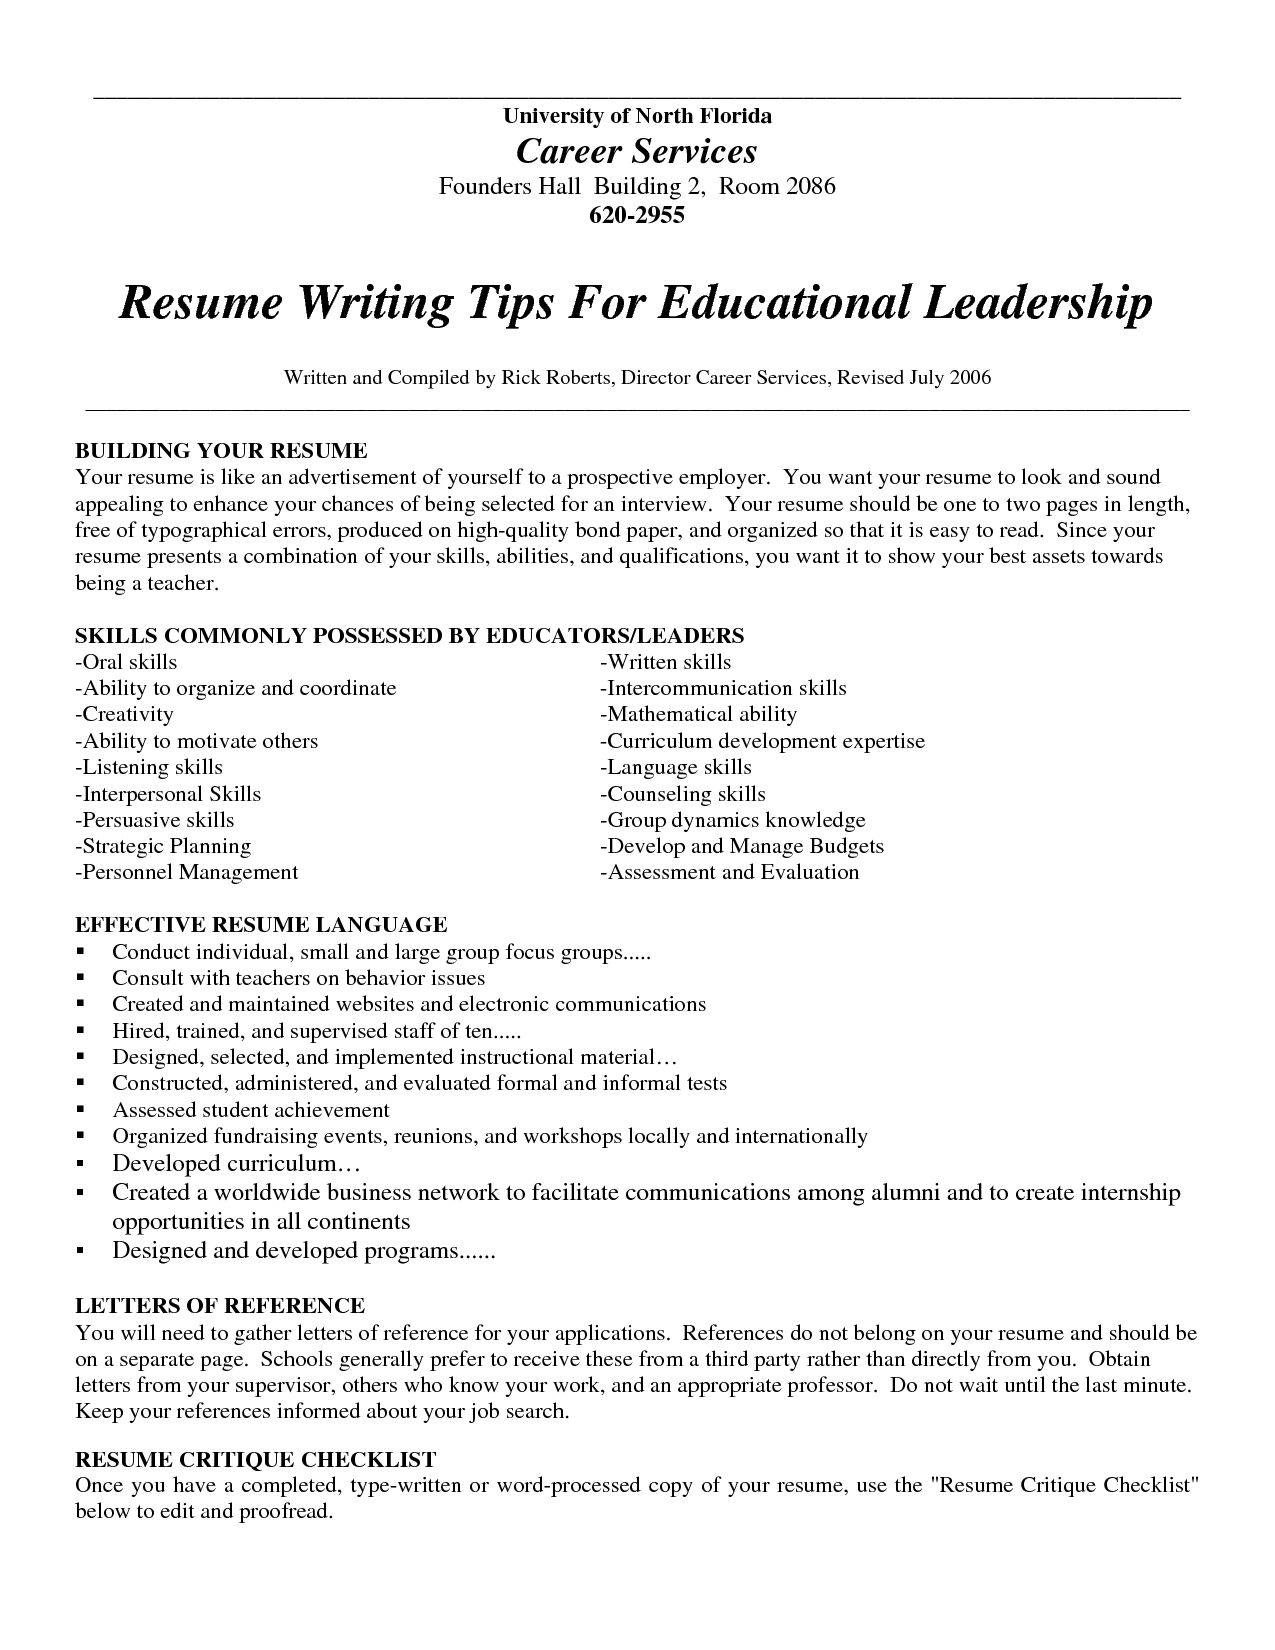 resume samples tips resume cv cover letter resume builder tips - Tips On Writing Resume